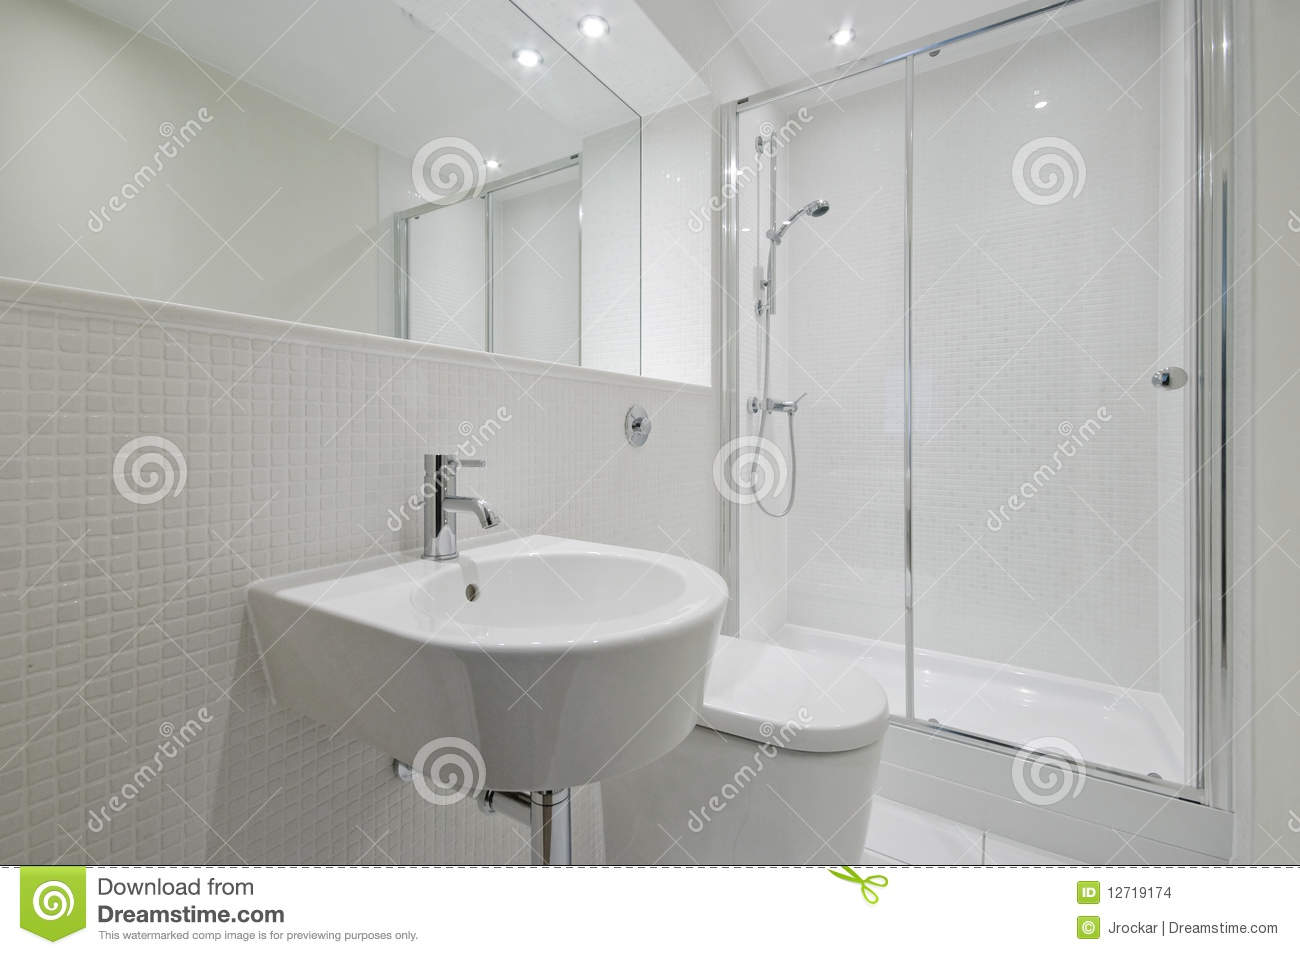 Modern en-suite bathroom stock photo. Image of bathroom - 12719174